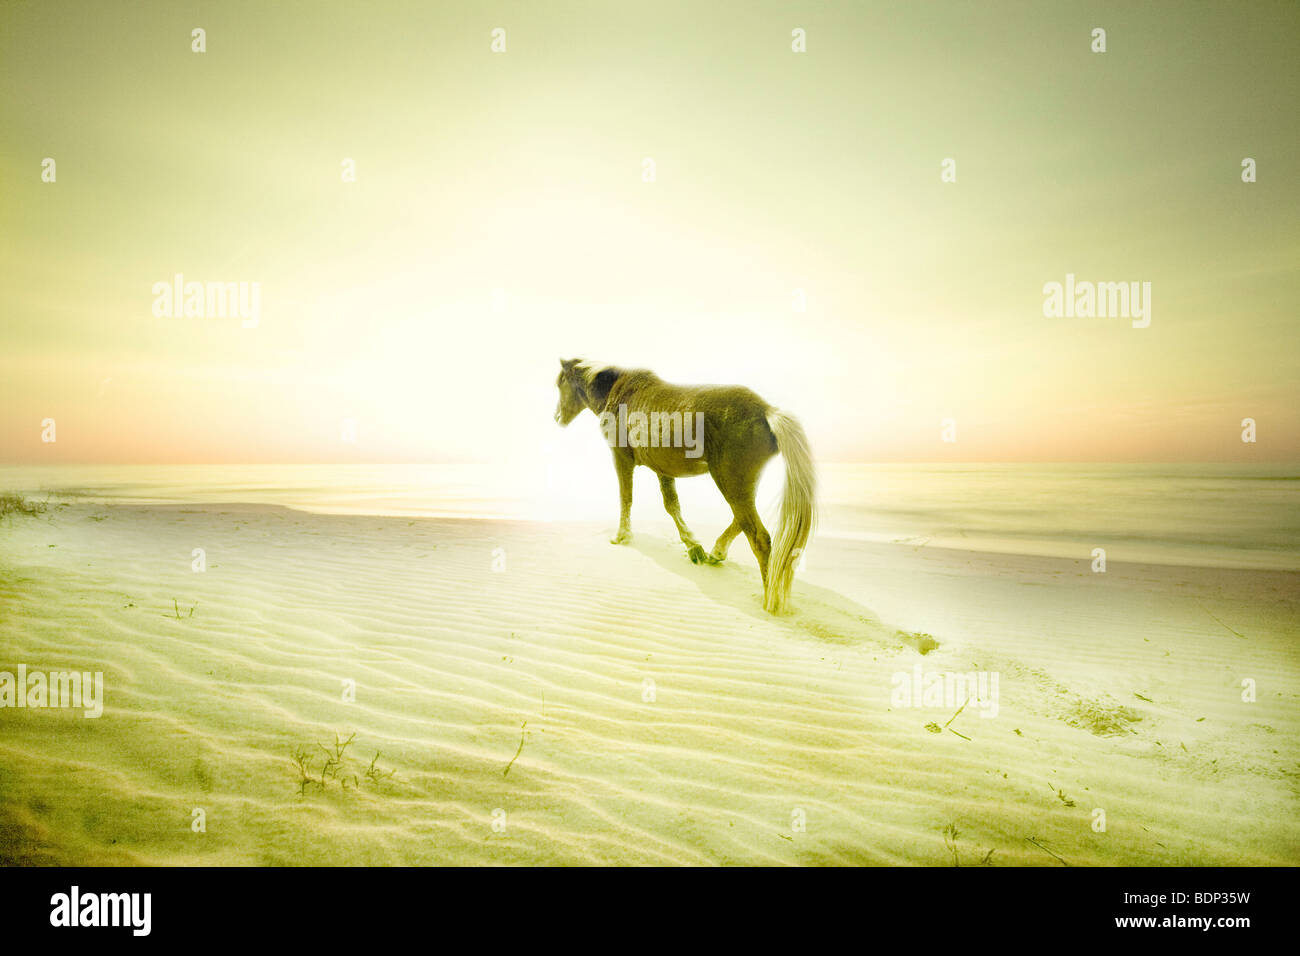 Un poney sur une plage de sable fin Photo Stock